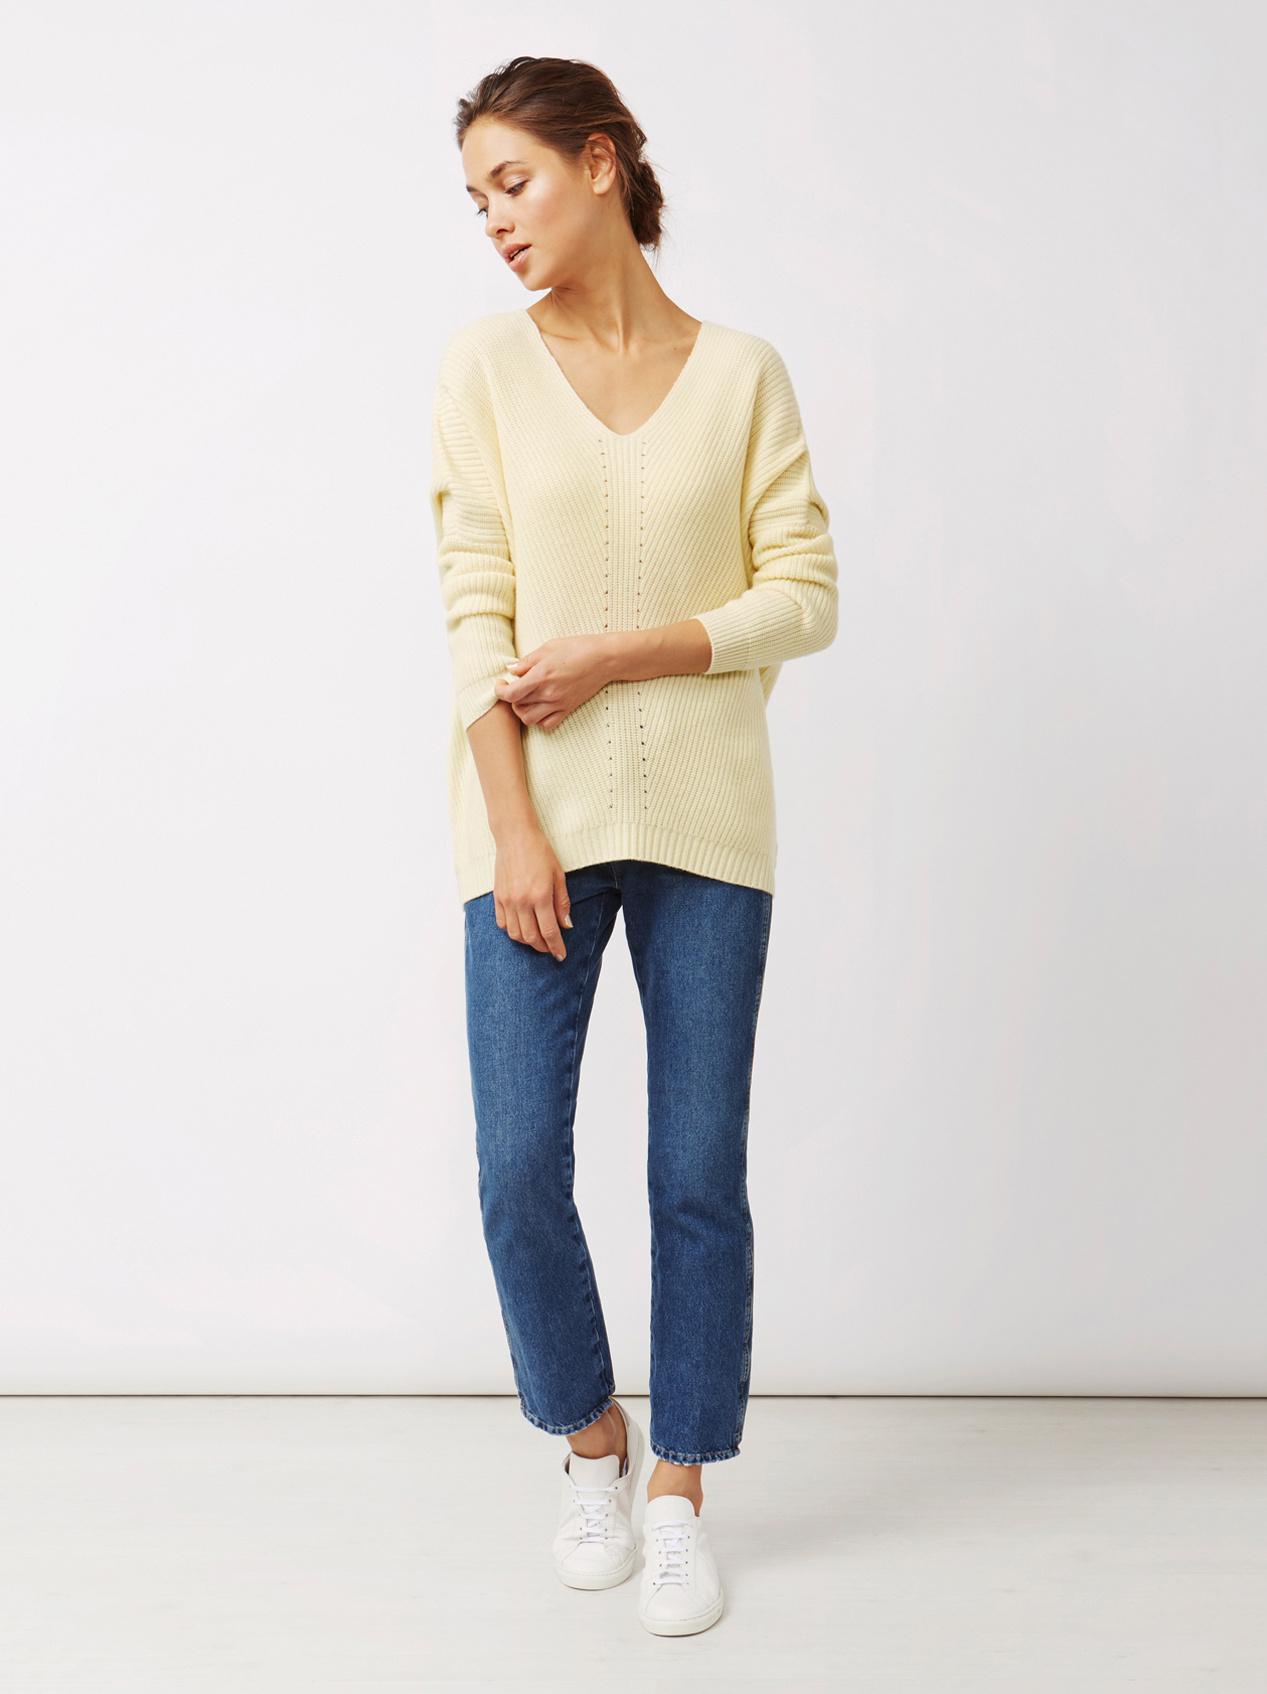 Soft Goat Women's Chunky V-Neck Sweater Limoncello